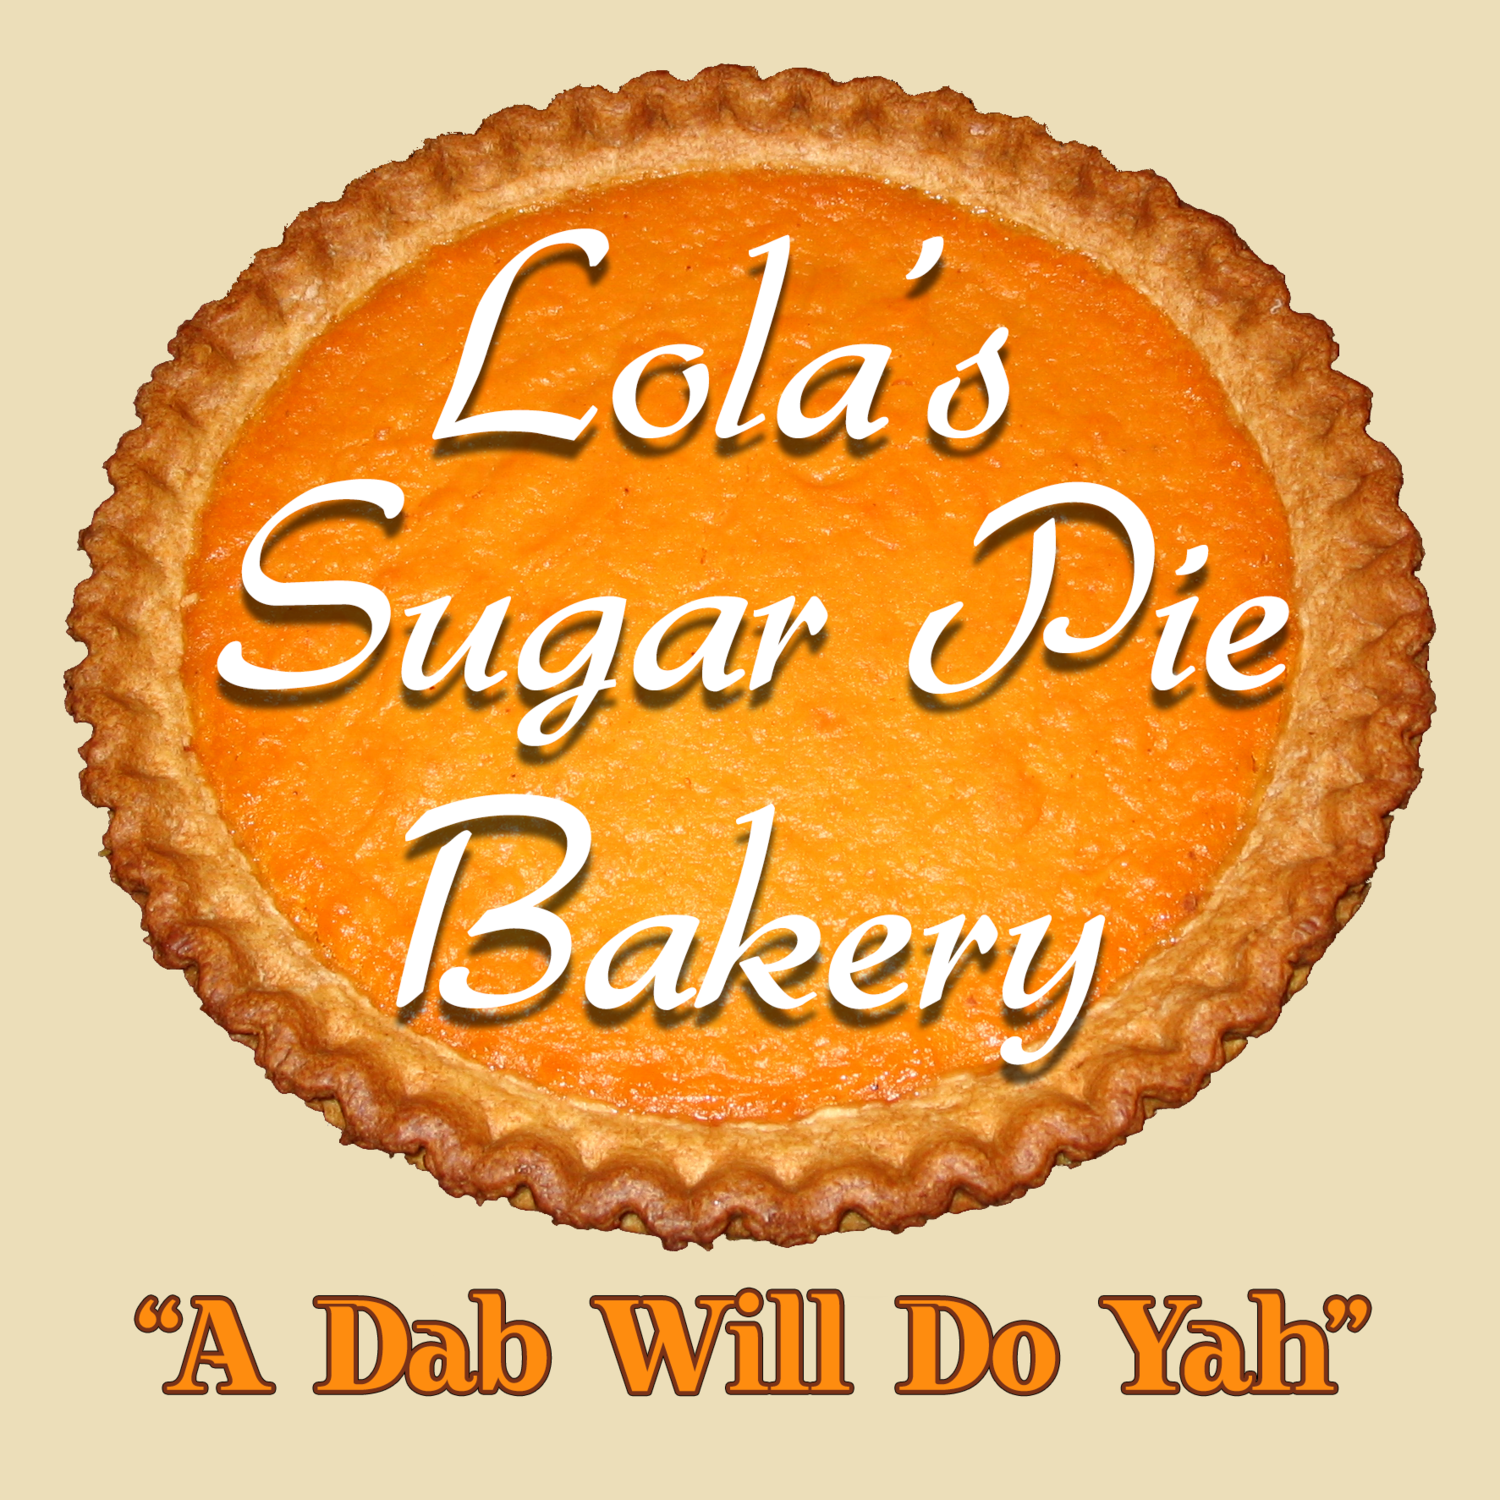 Lola's Sugar Pie Bakery